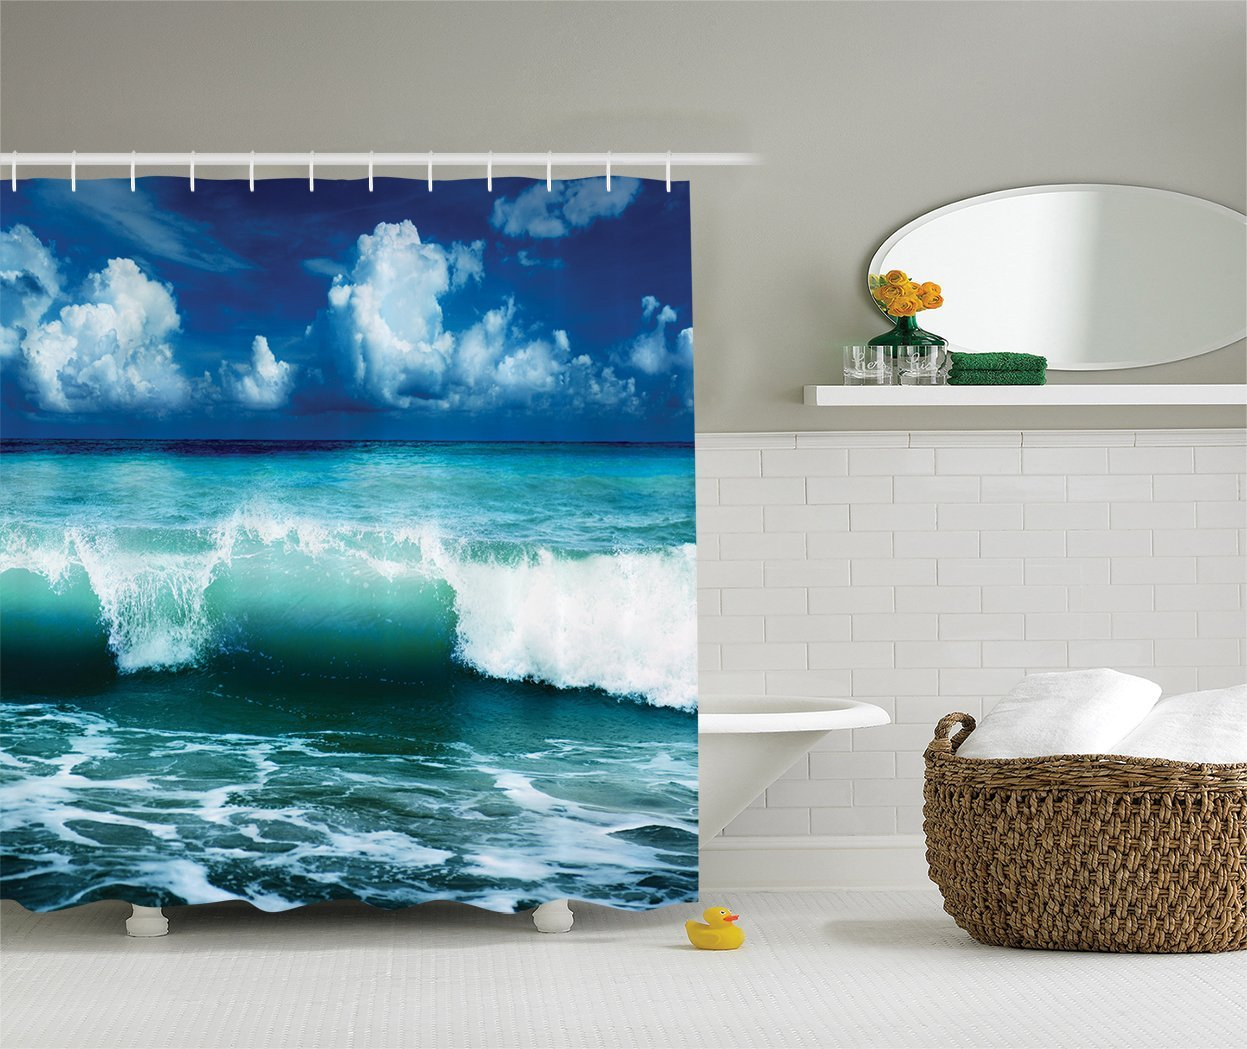 Us 14 17 38 Off Ocean Shower Curtain Surf Waves Caribbean Sea And Water Splash Picture For Surfers Theme Print Polyester Fabric Bathroom Set In